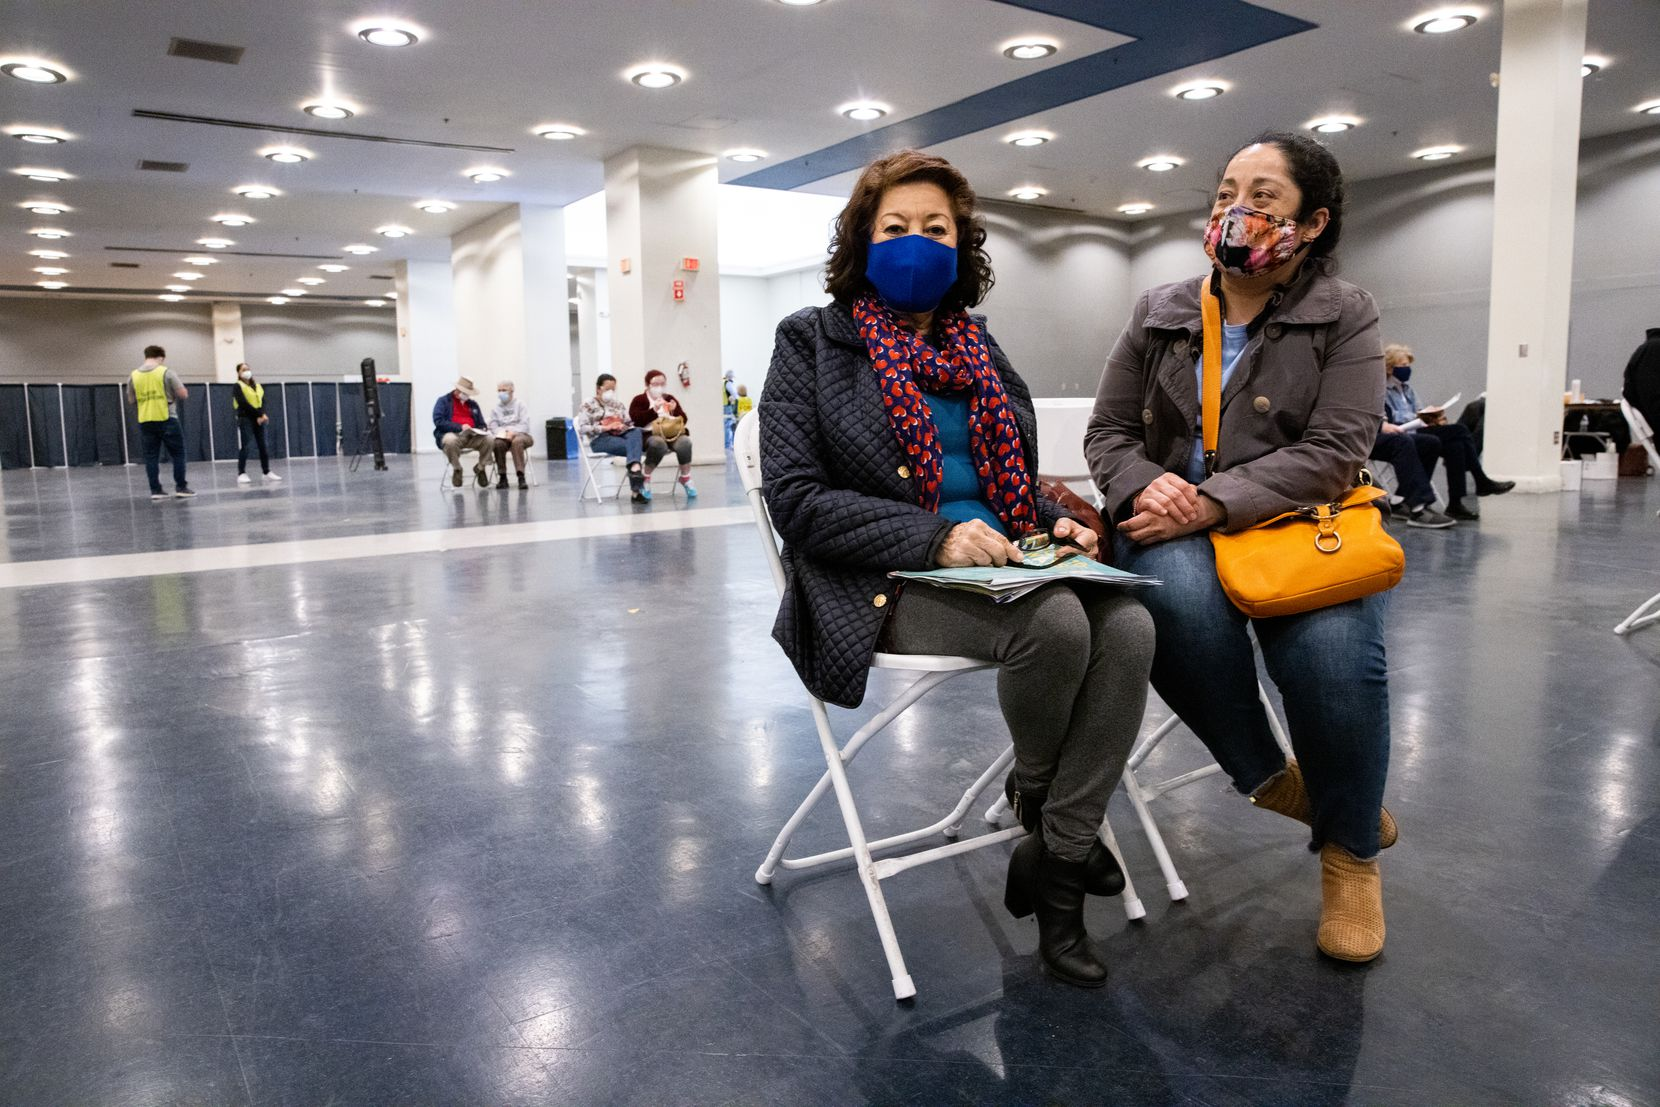 María Dolores Sanchez (left) sits with daughter Cynthia Tort-Urbina in the post-vaccination waiting area at Fair Park in Dallas on Tuesday afternoon, Feb. 2, 2021. (Juan Figueroa/ The Dallas Morning News)